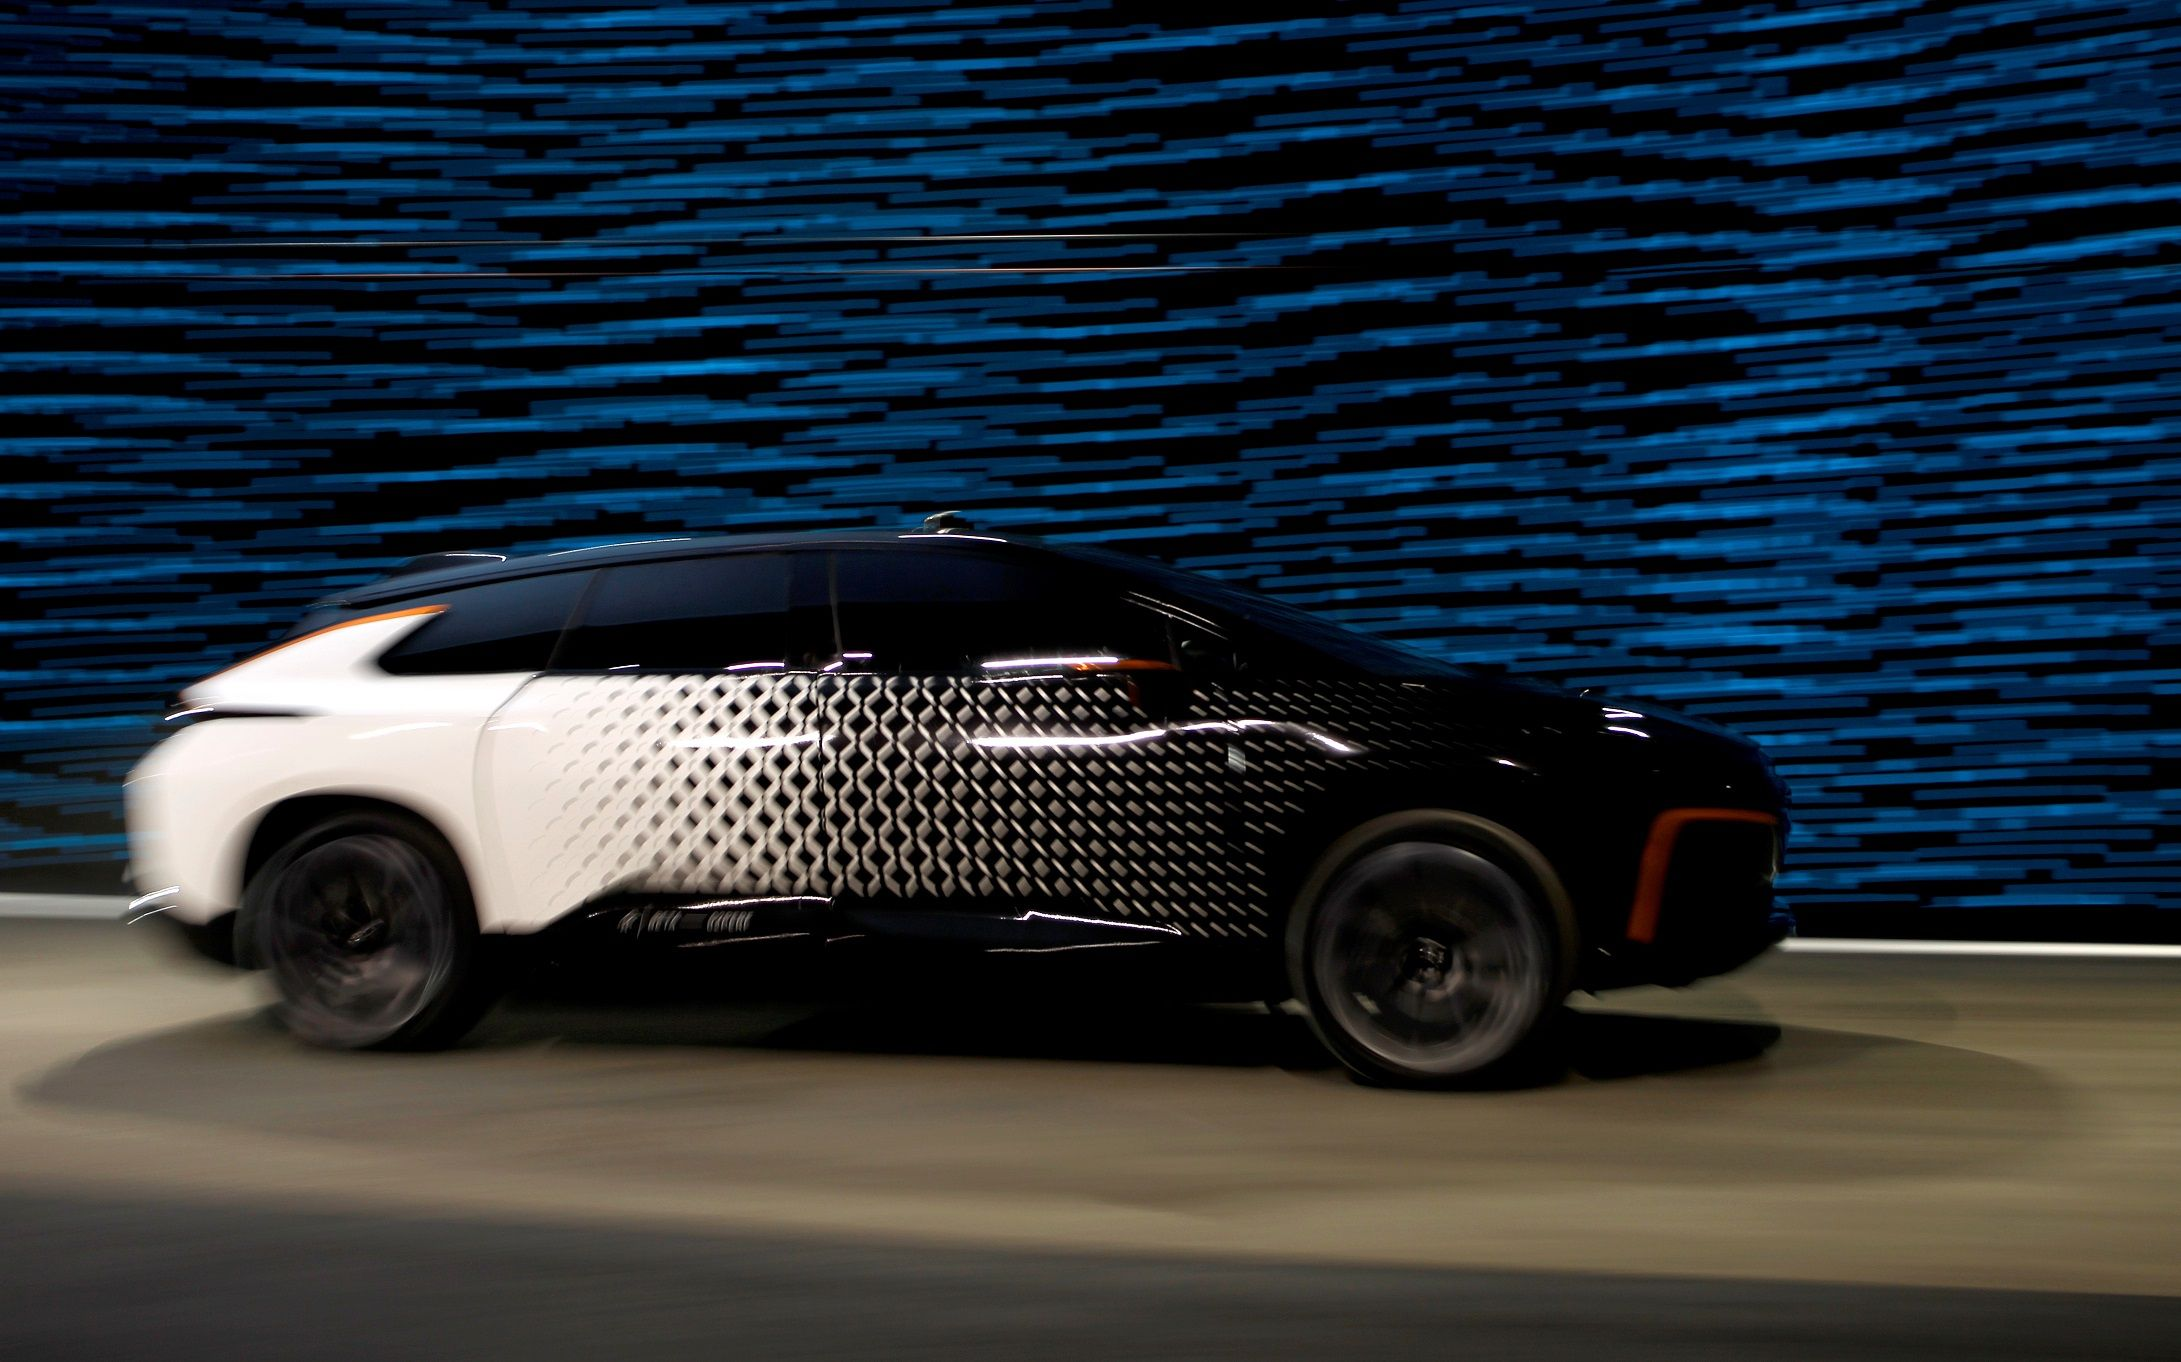 Faraday Future Electric Car Travels From 0 To 60 Mph In 2